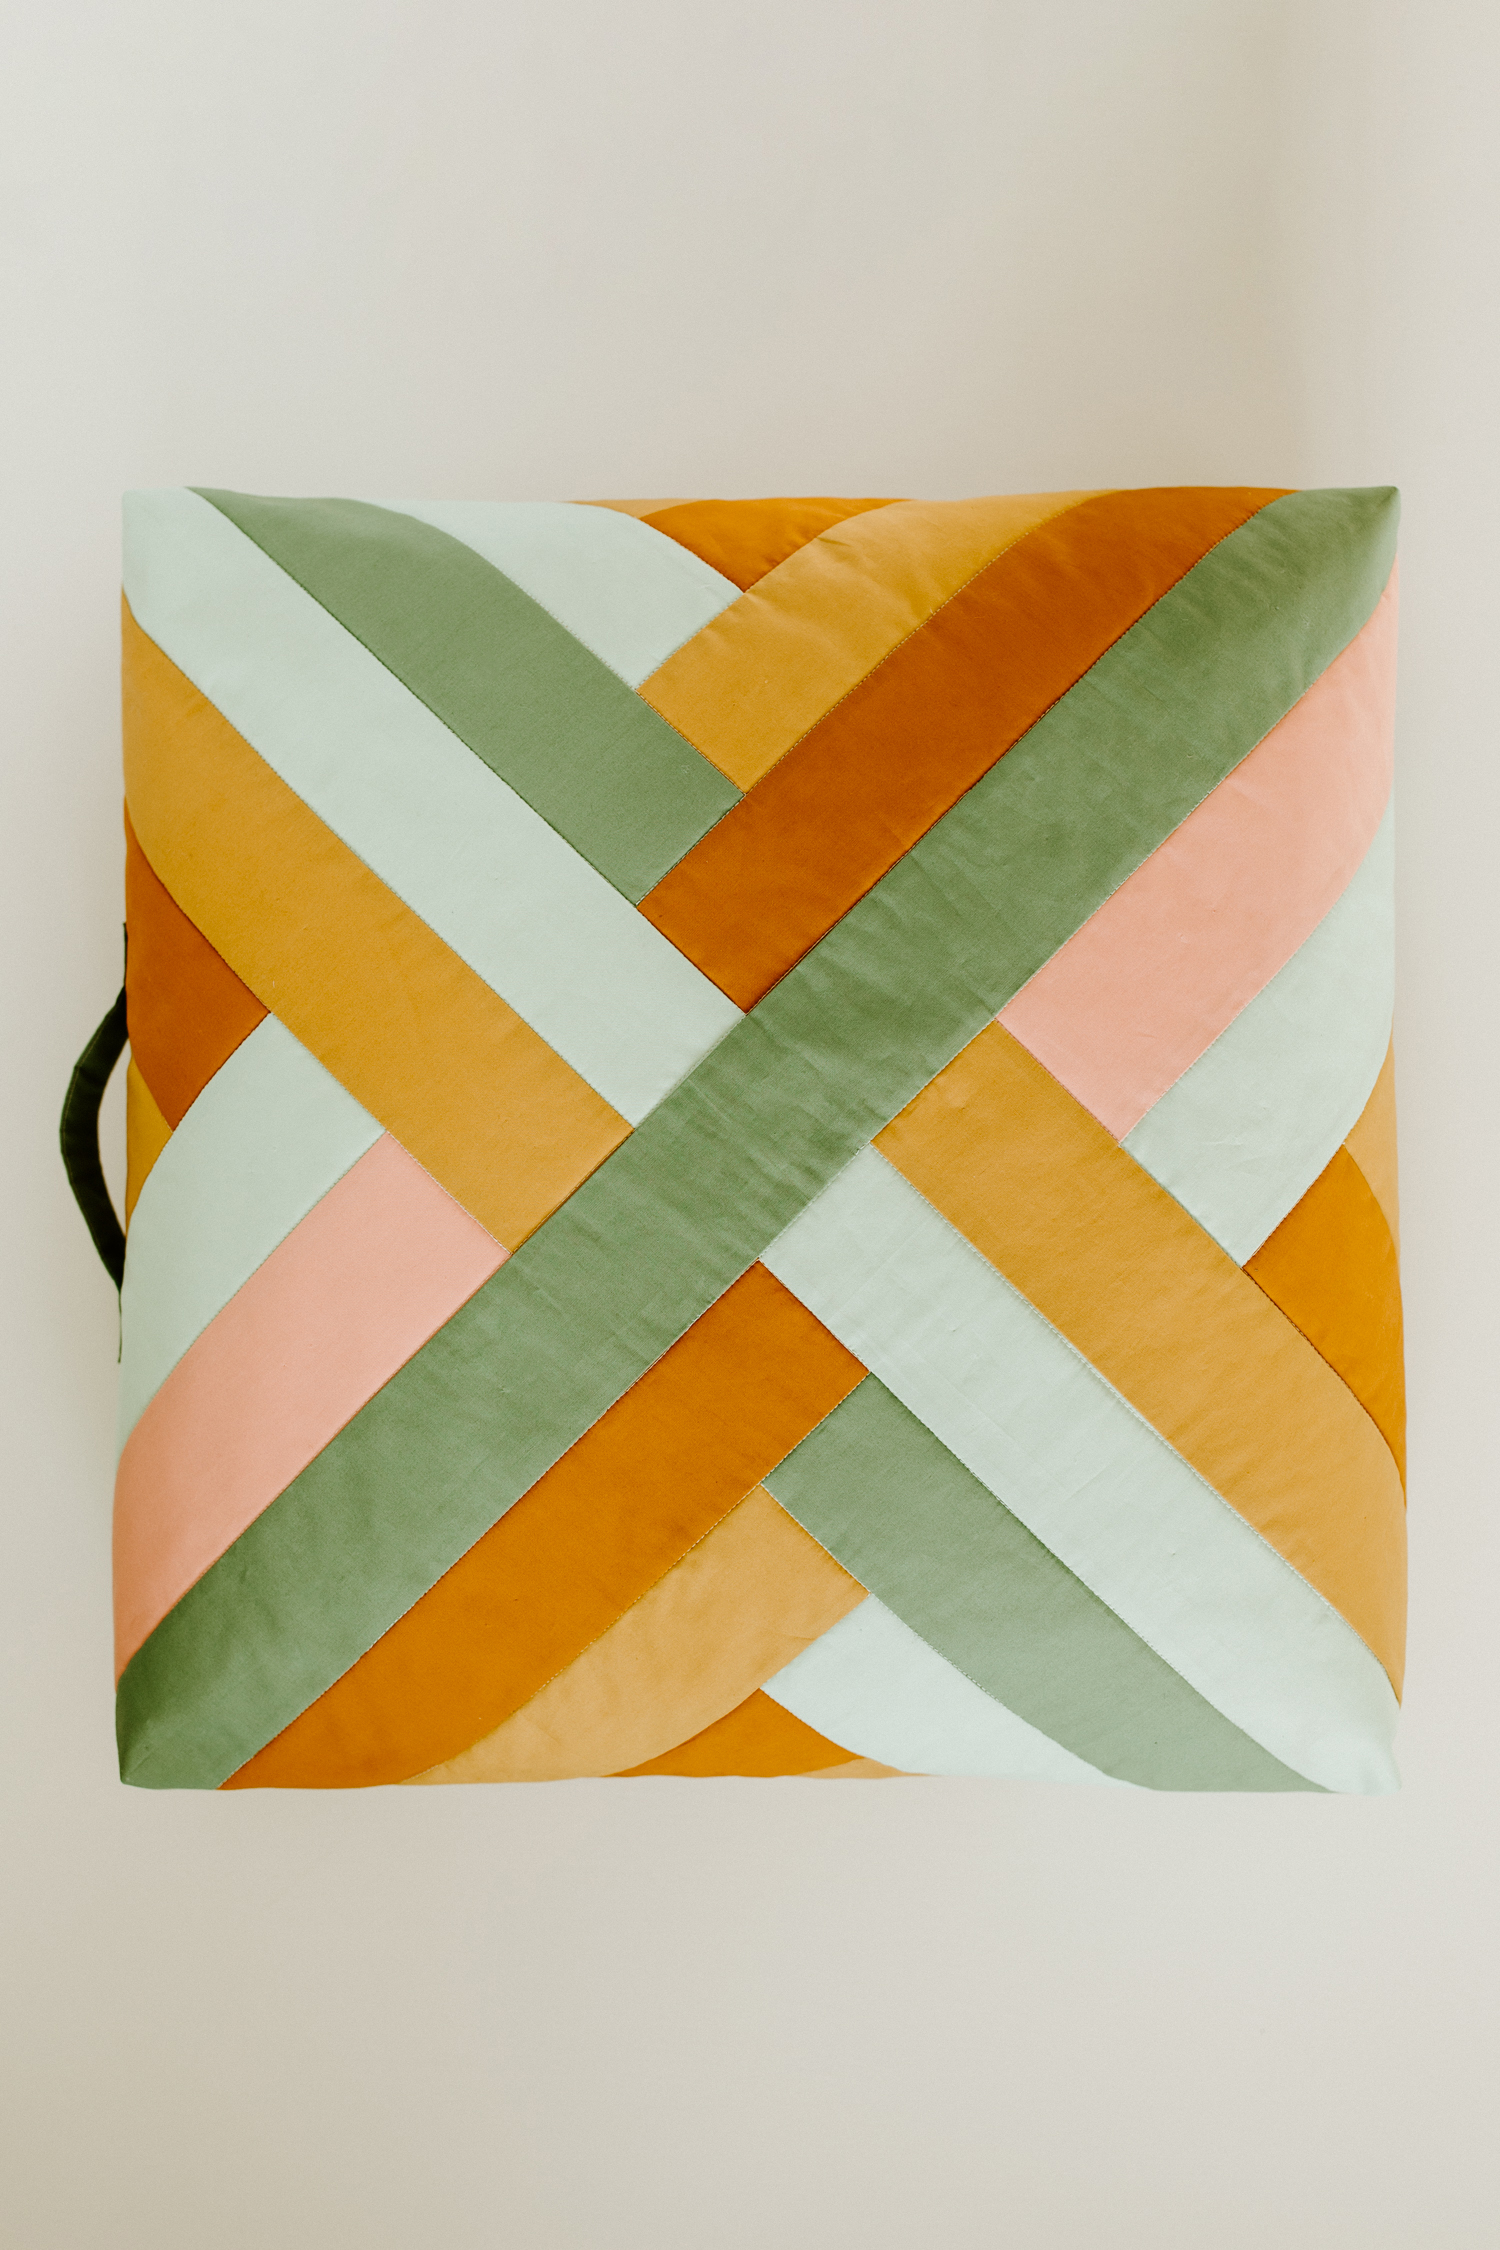 This quilted floor pillow tutorial walks you through step-by-step instructions to sew a floor pillow using the Maypole wall hanging pattern. suzyquilts.com #sewingtutorial #sewingdiy